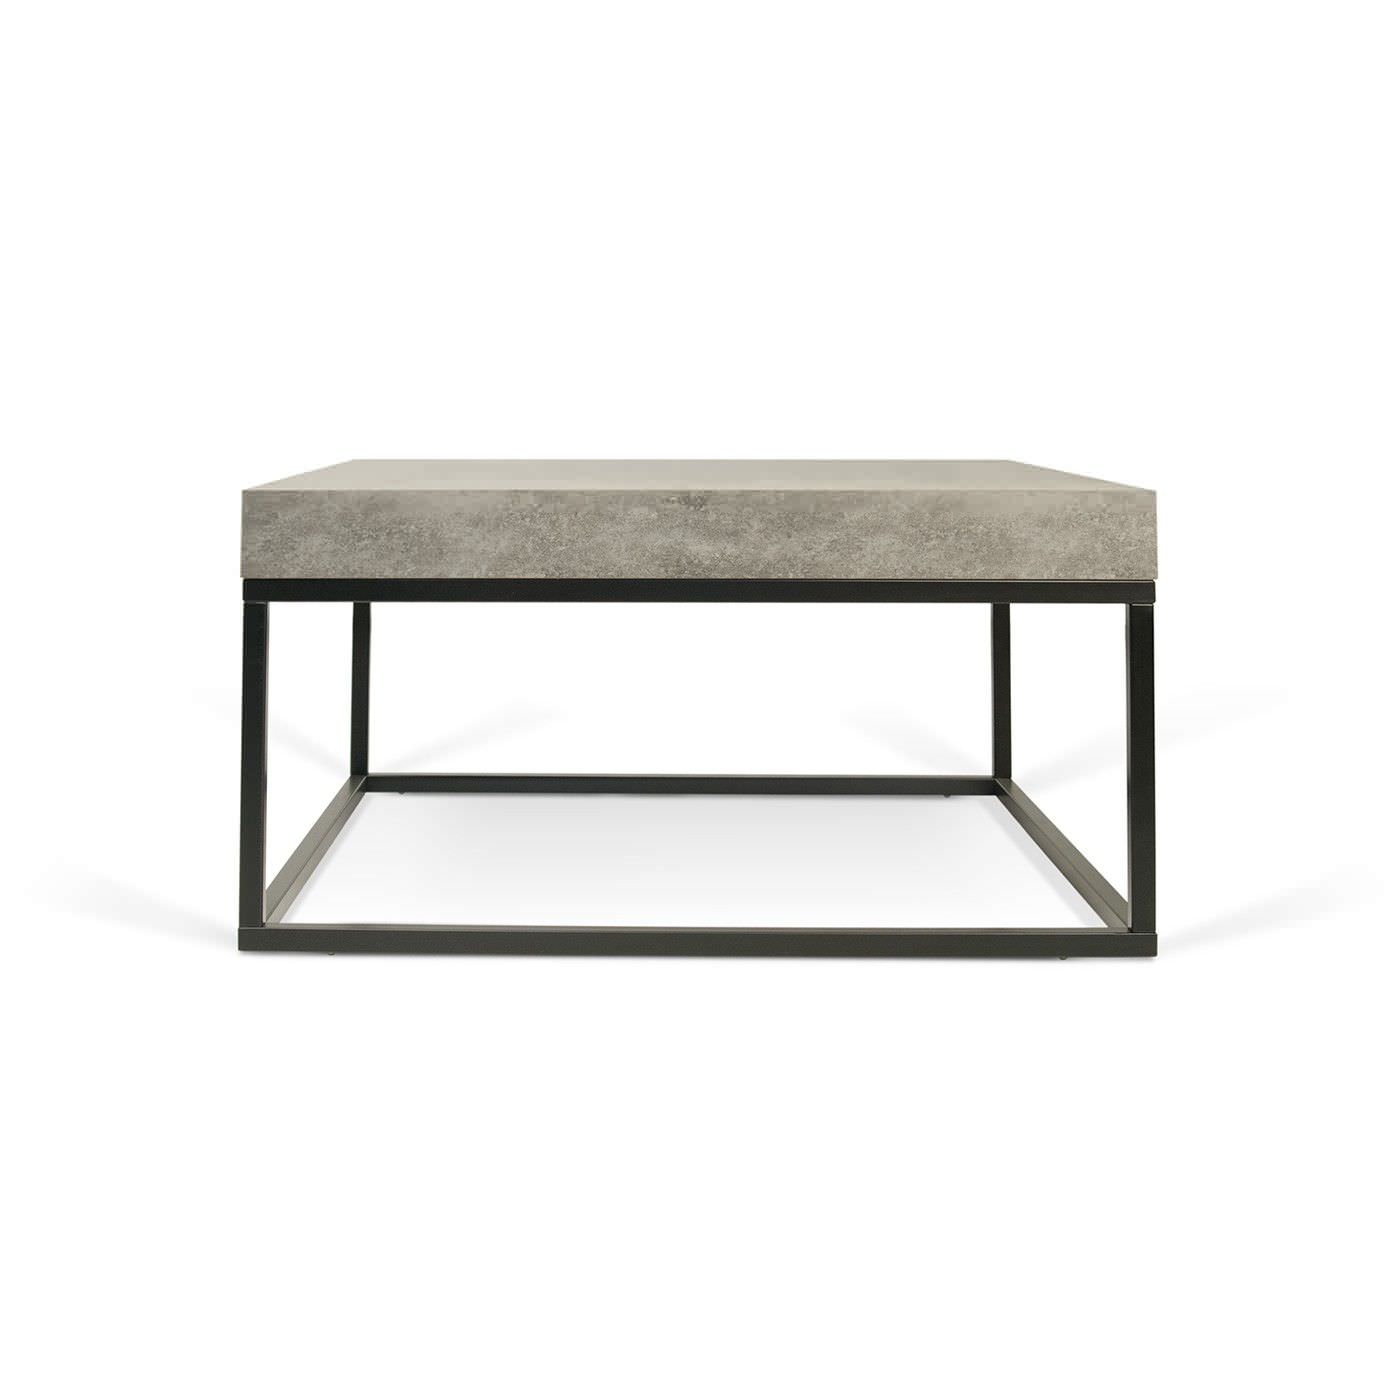 Couchtisch Ricardo Contemporary Coffee Table Metal Concrete Melamine